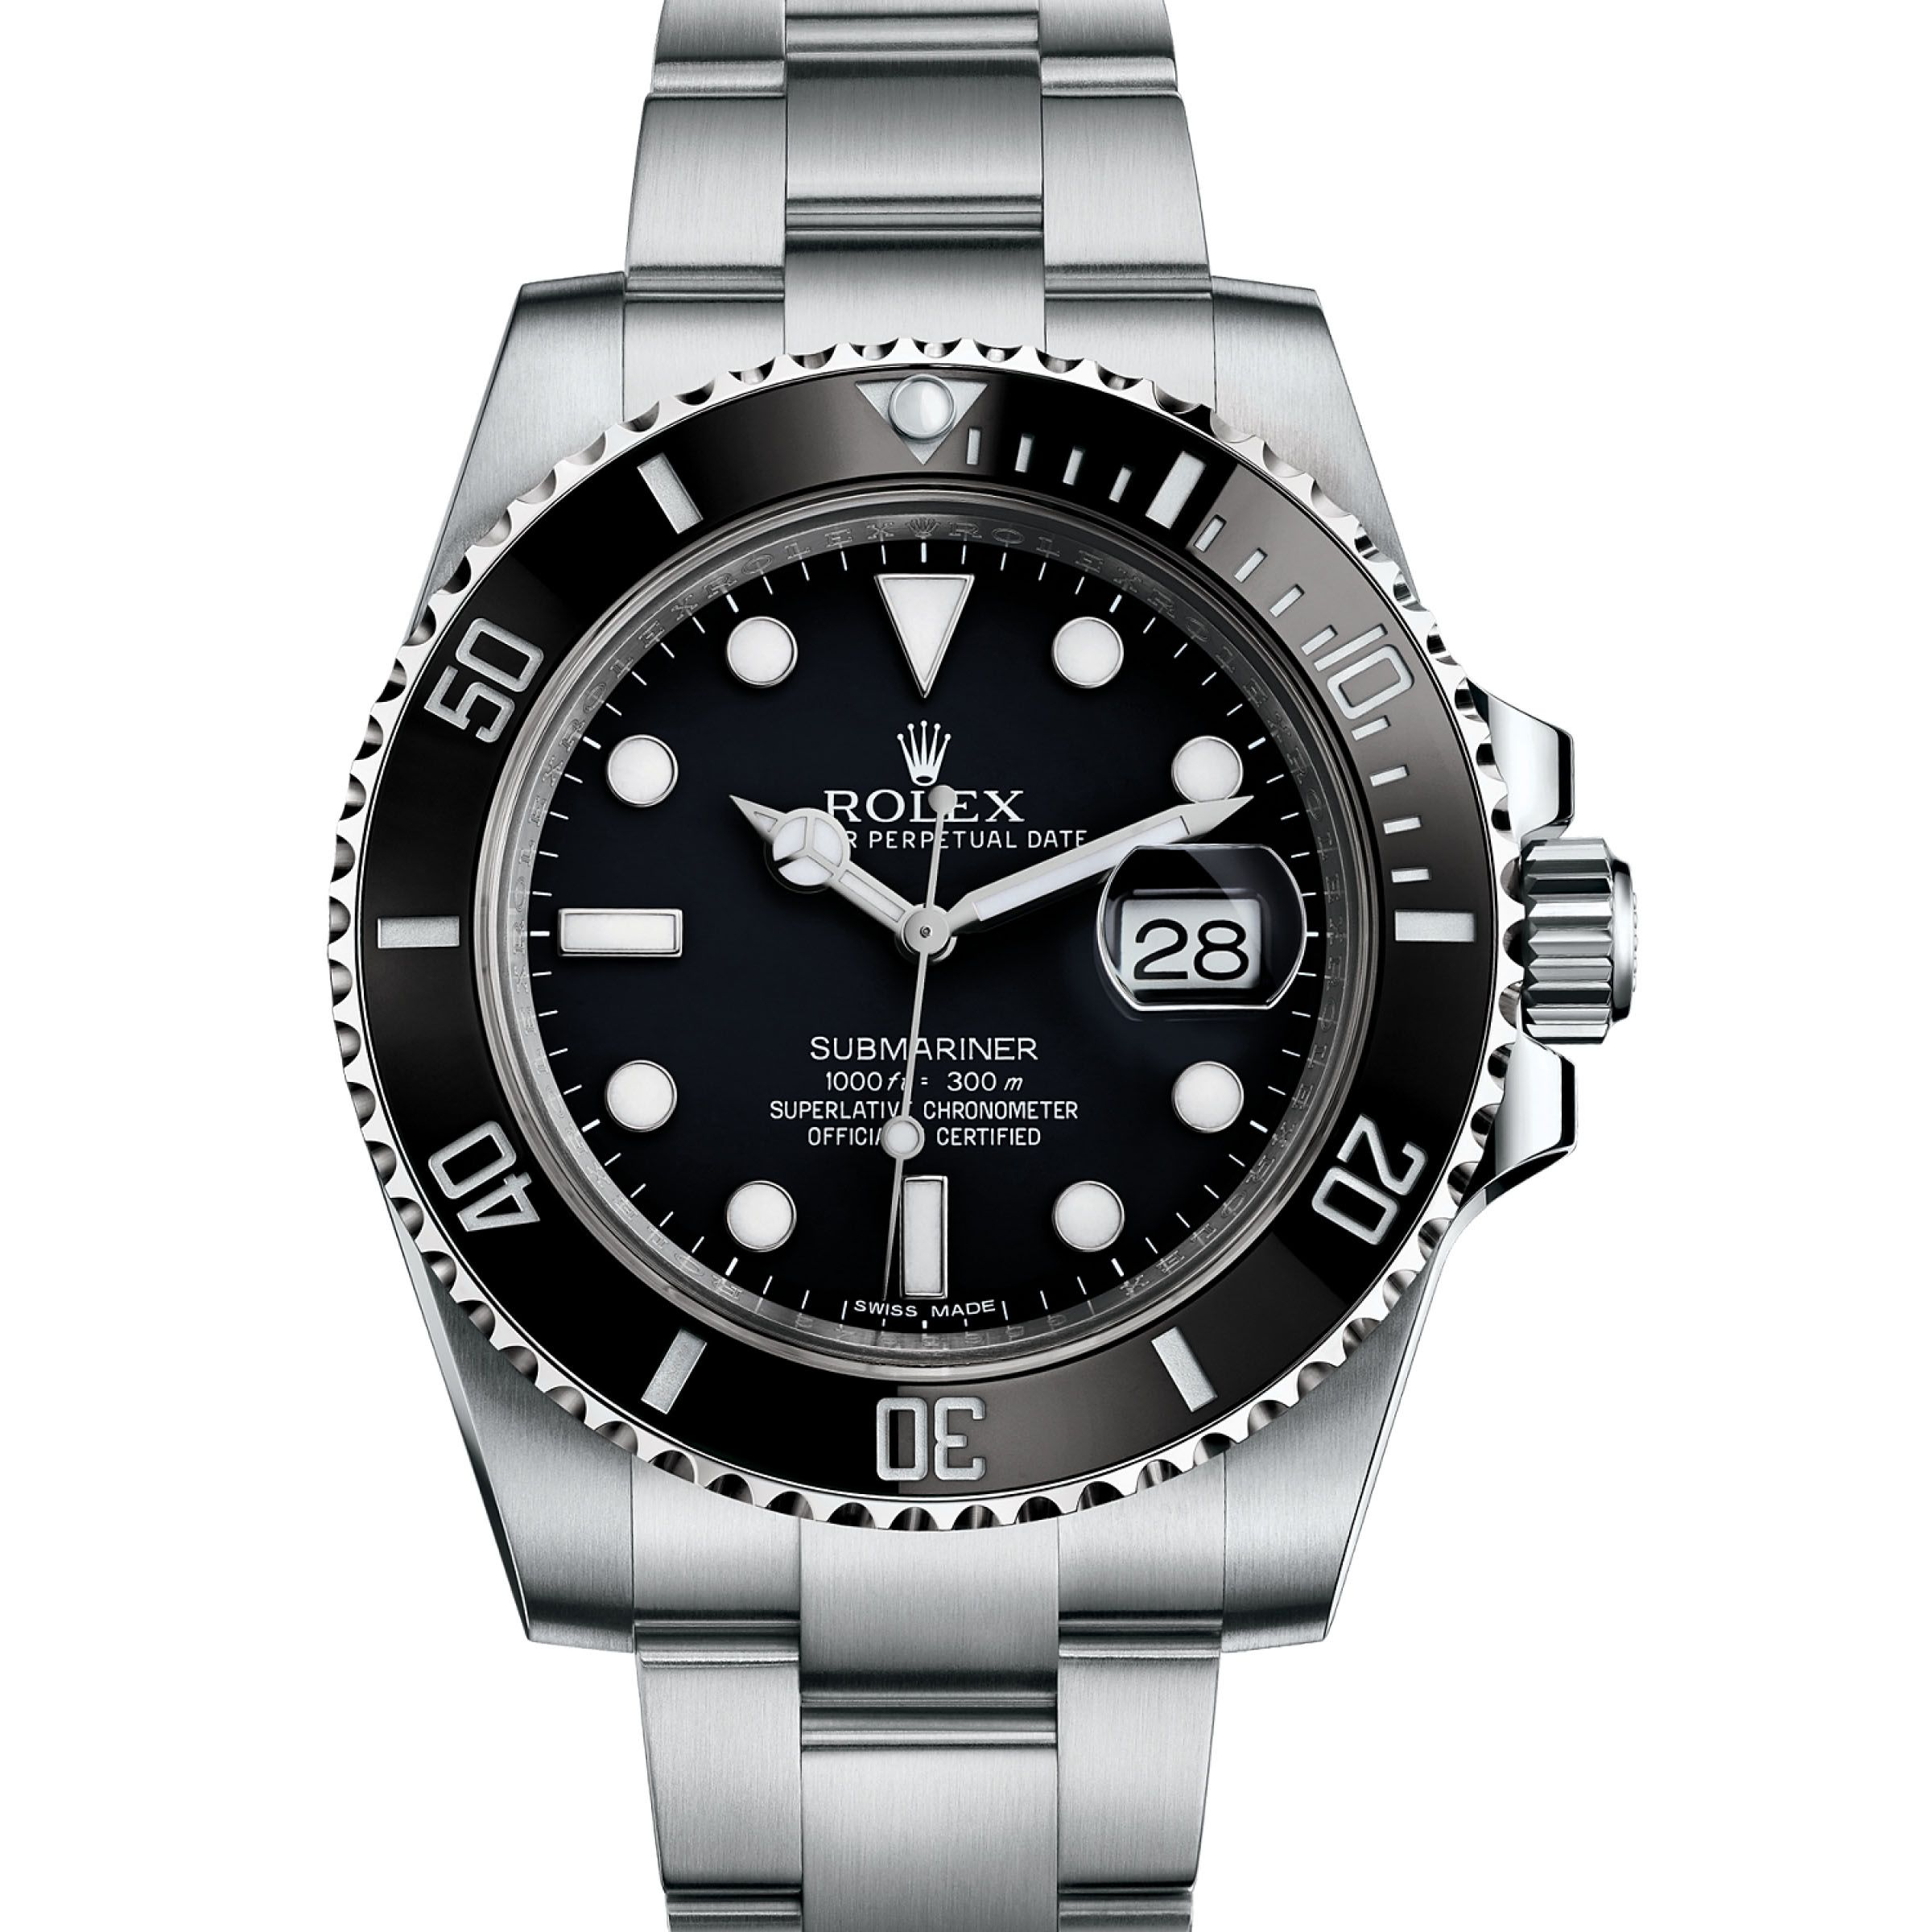 #Rolex Submariner Stainless Steel #Watch